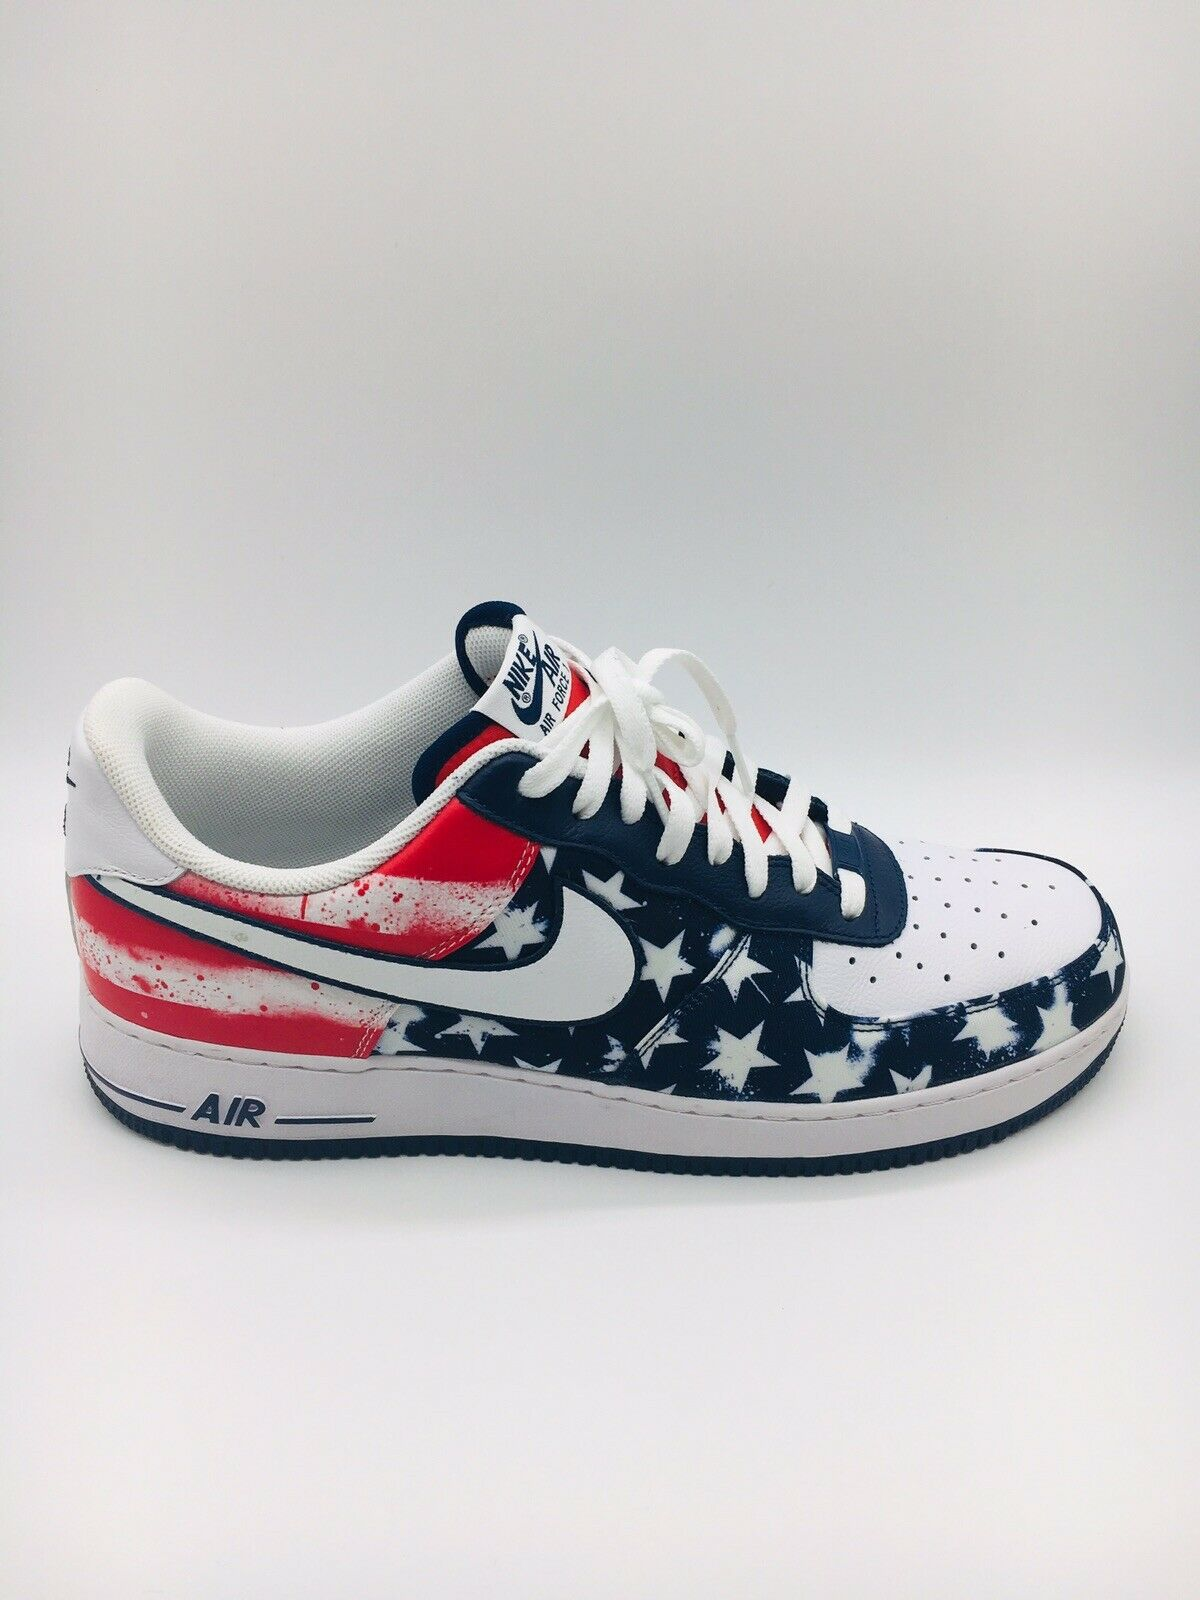 Nike Air Force 1 Independence Day 488298 425 Low Top